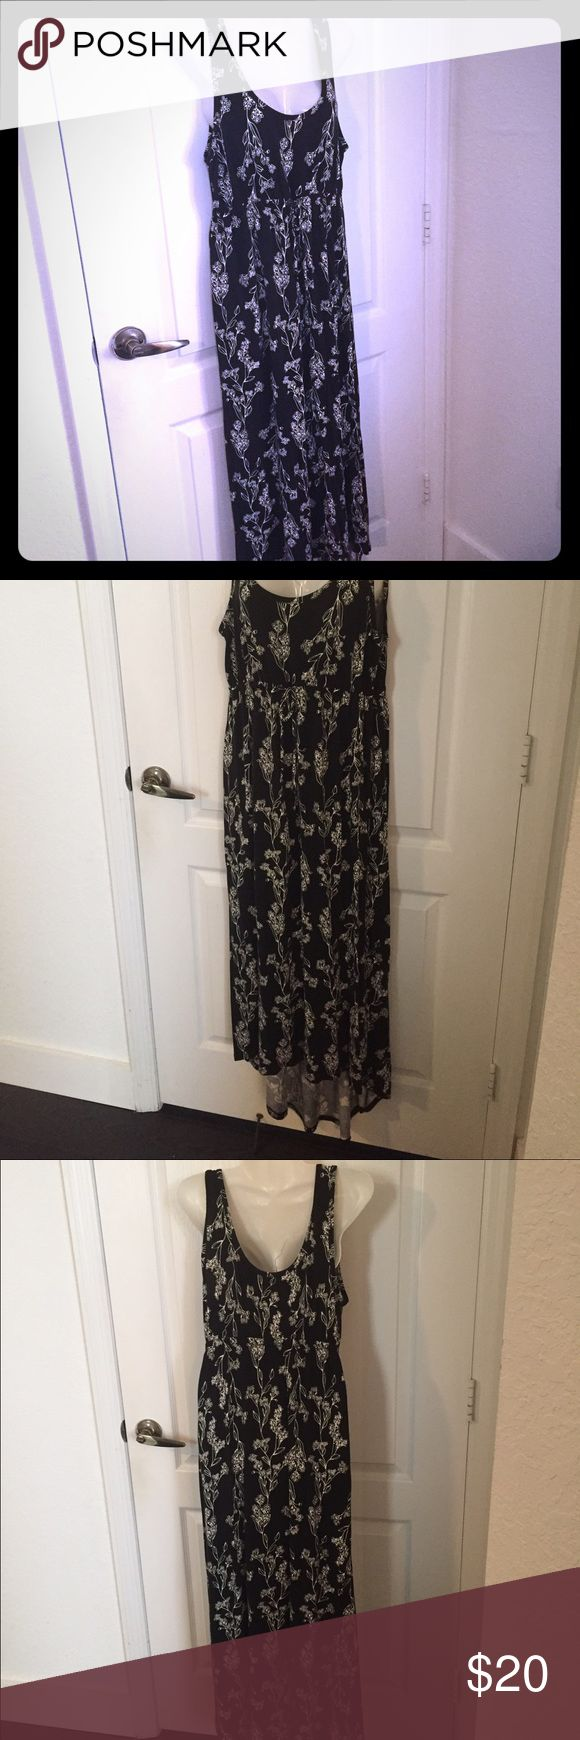 Old navy high low maternity dress✨💖 Like NEW!!high low old navy maternity dress,only worn 3 times,excellent condition,size S,black & white,very comfy,see my other listings to bundle and save✨ Old Navy Dresses High Low